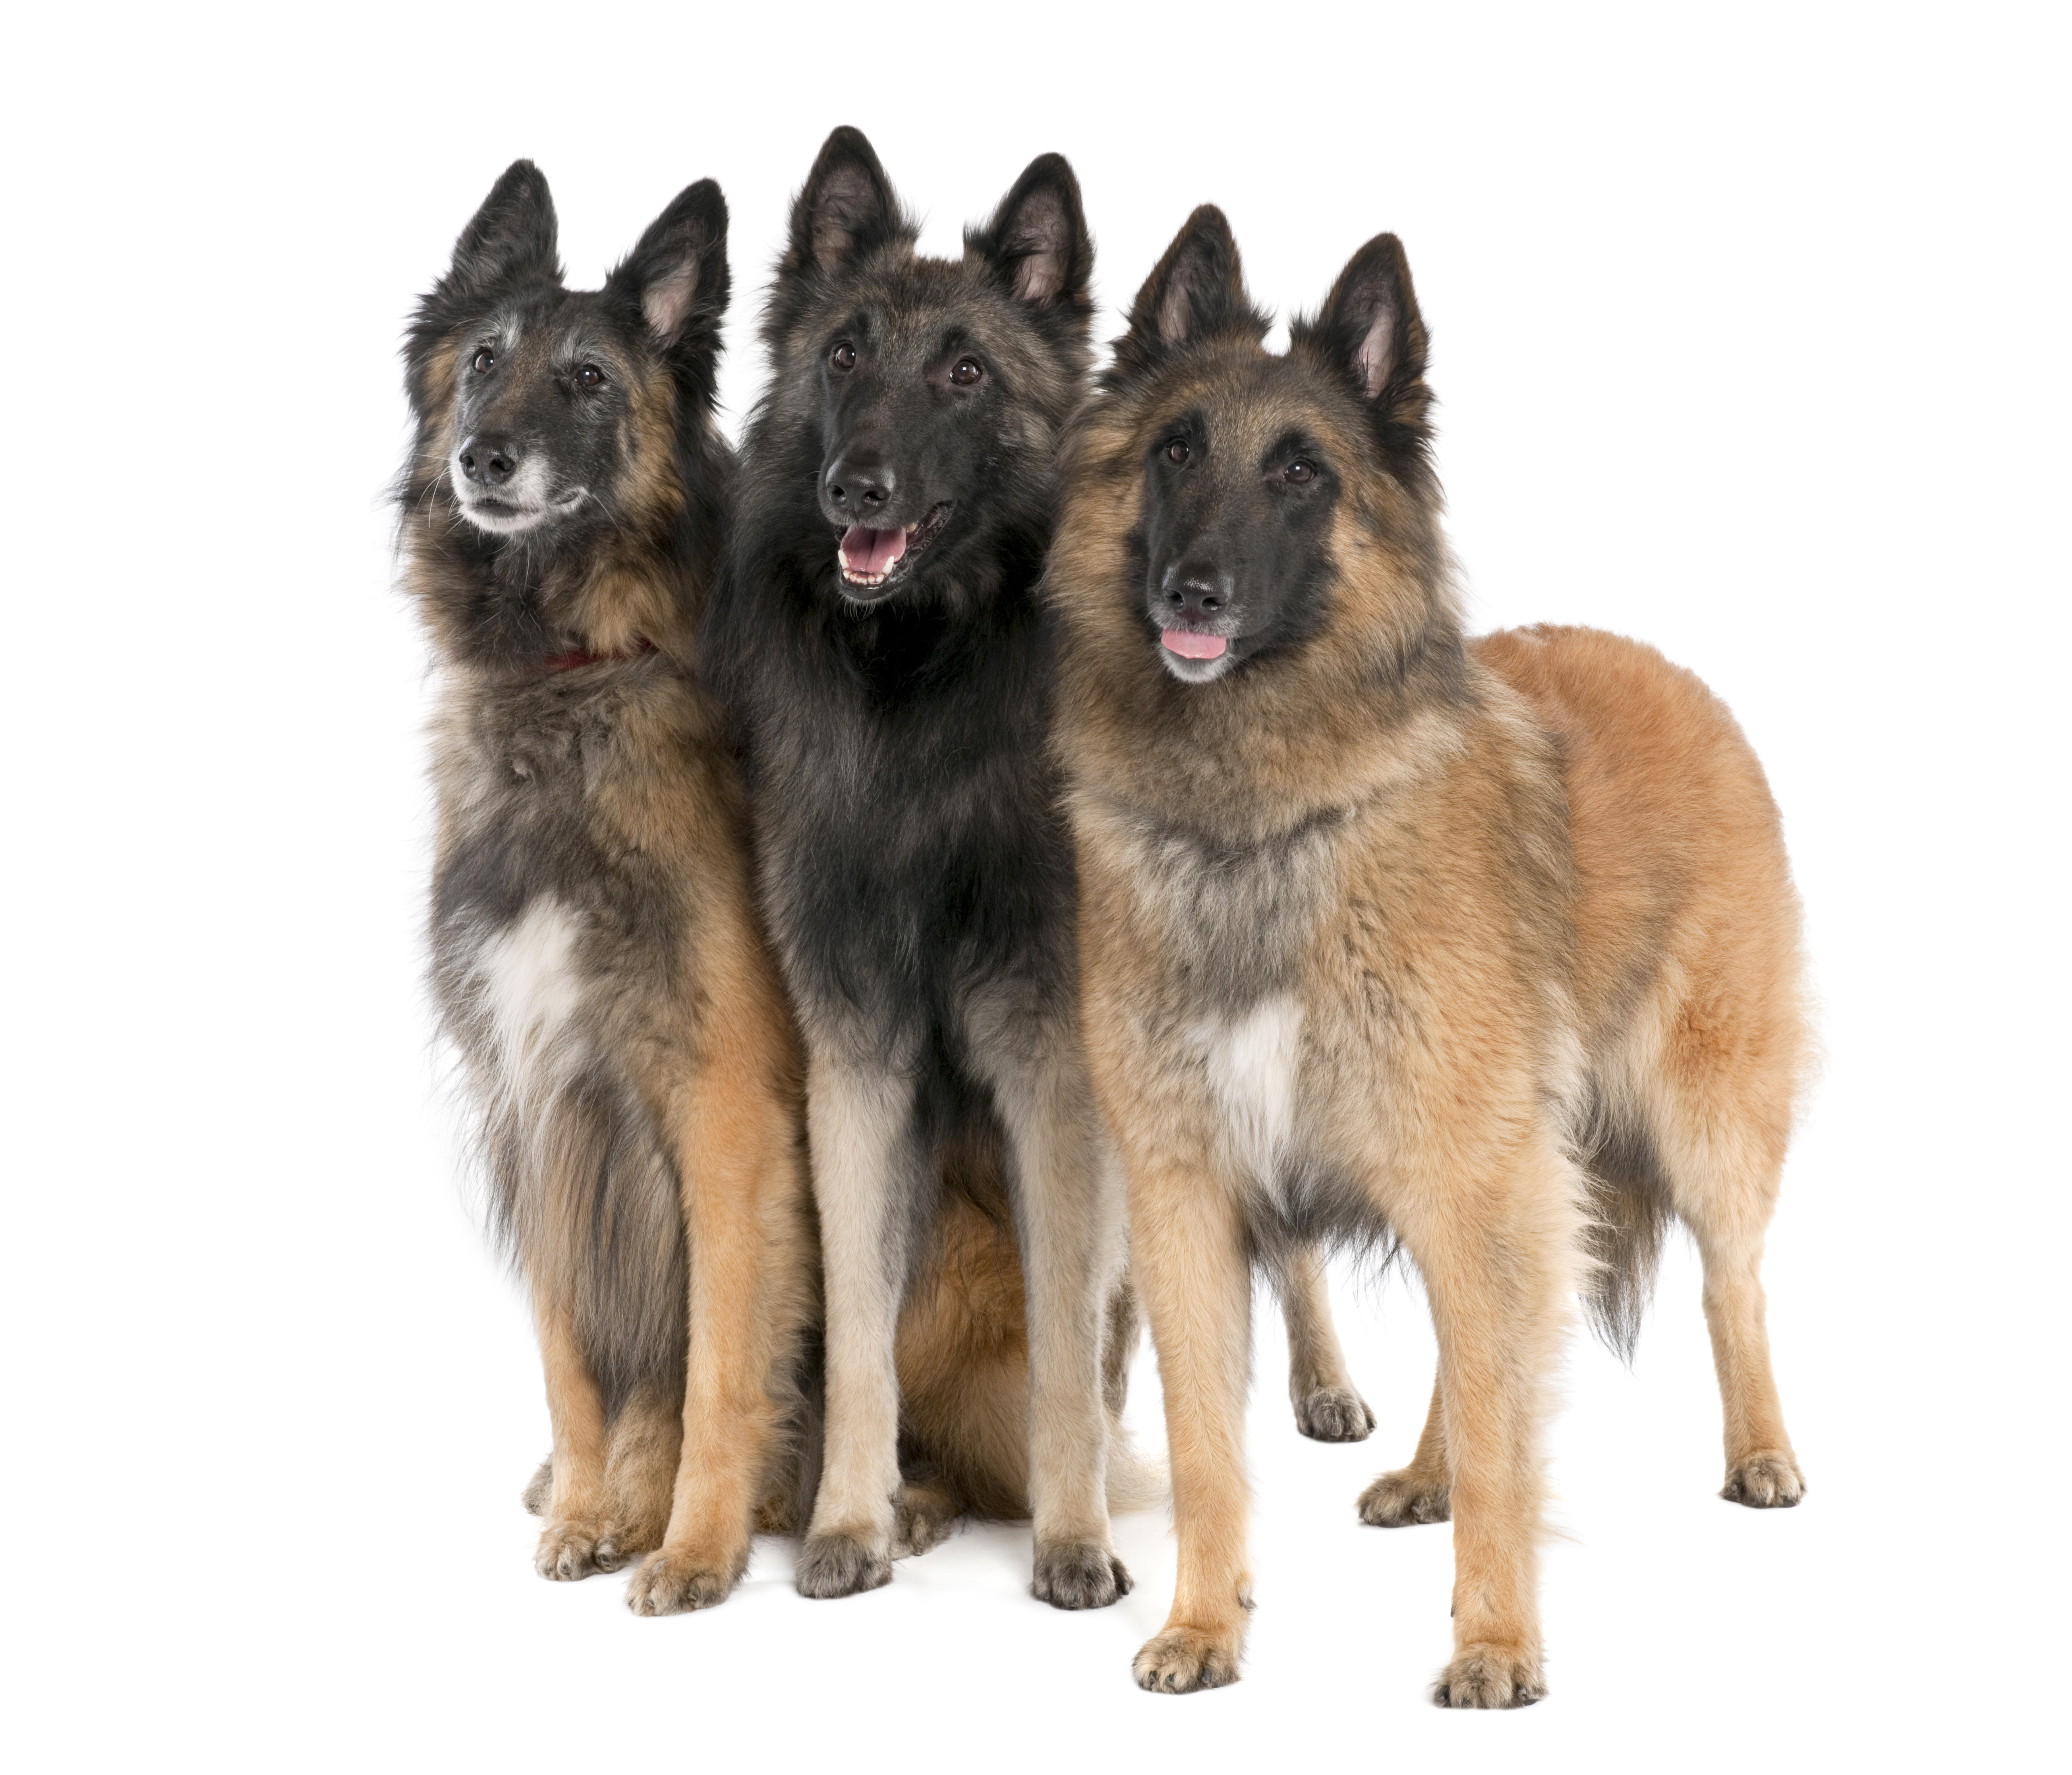 Belgian Tervuren ( 6, 3 and 2 years old) in front of a white background